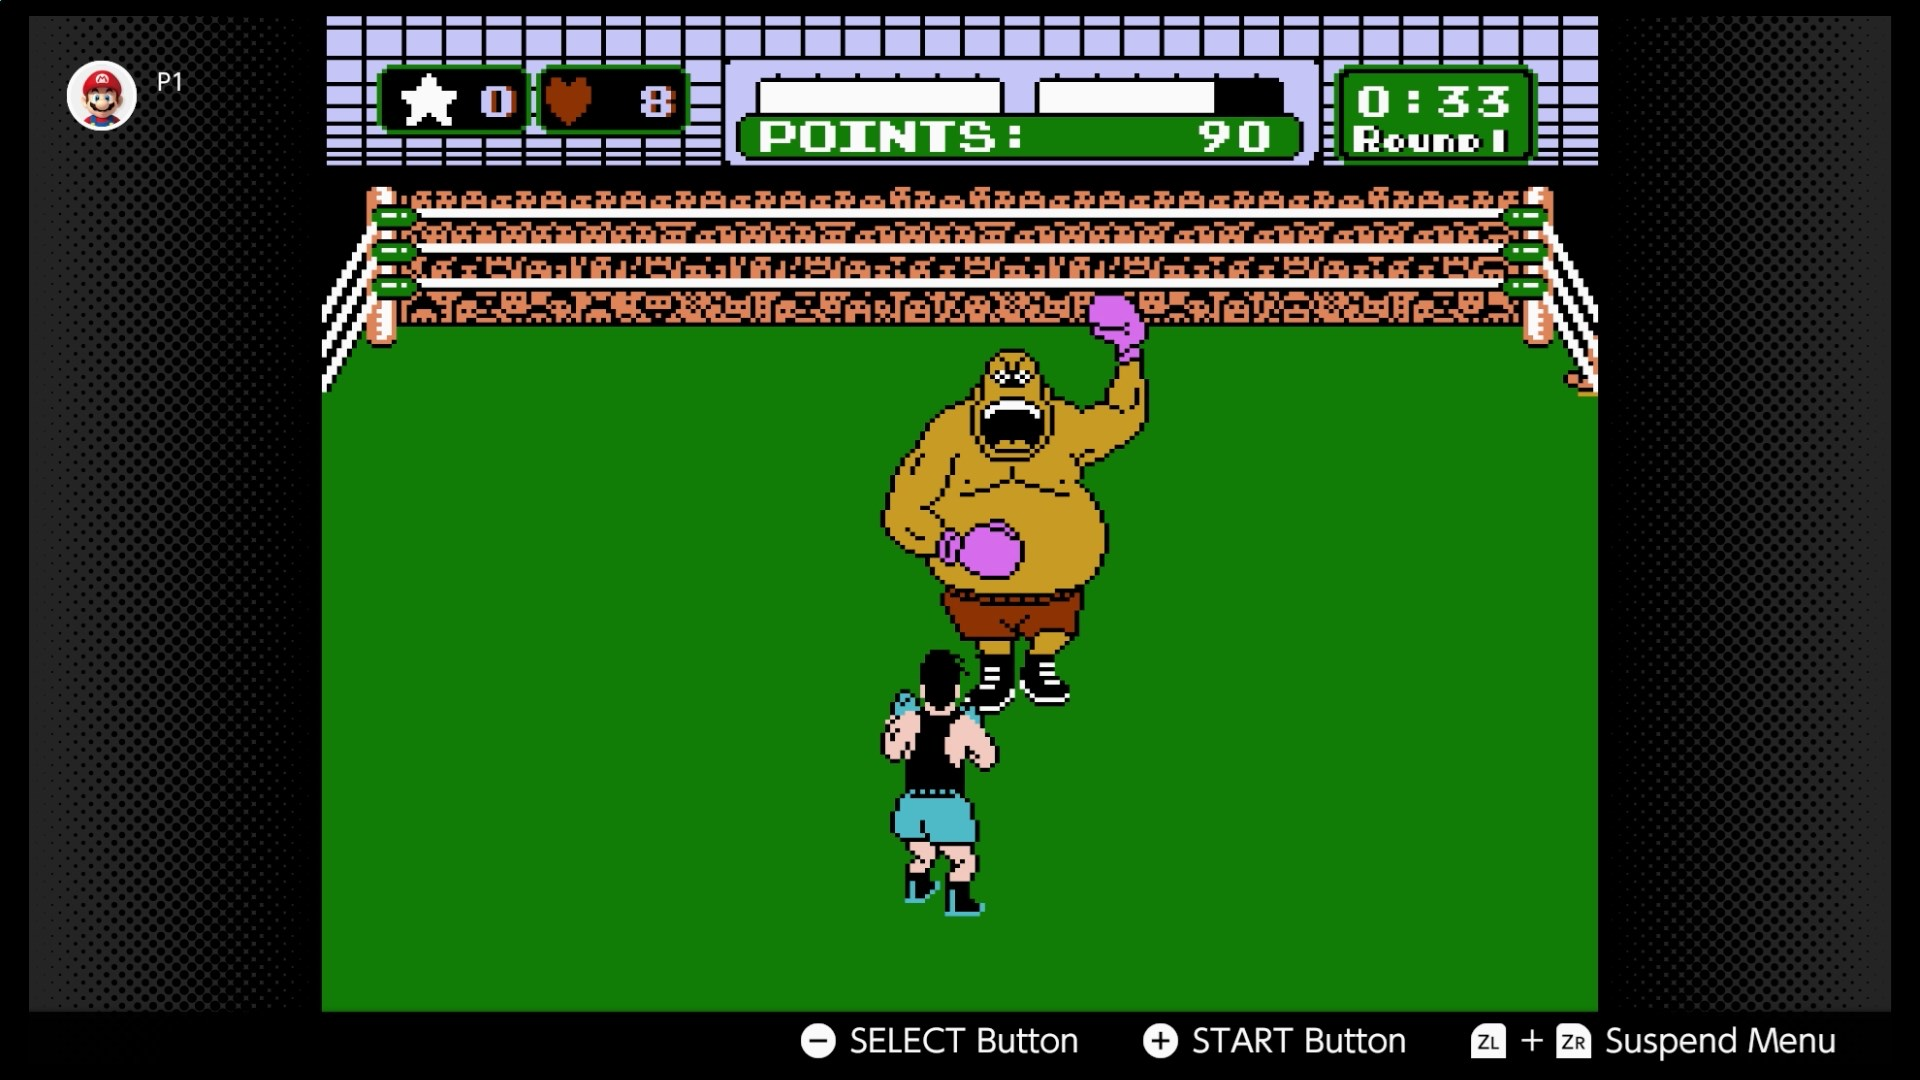 Nintendo Switch agrega más juegos a la consola virtual de NES: una rareza de Mario, Punch-Out!! y más